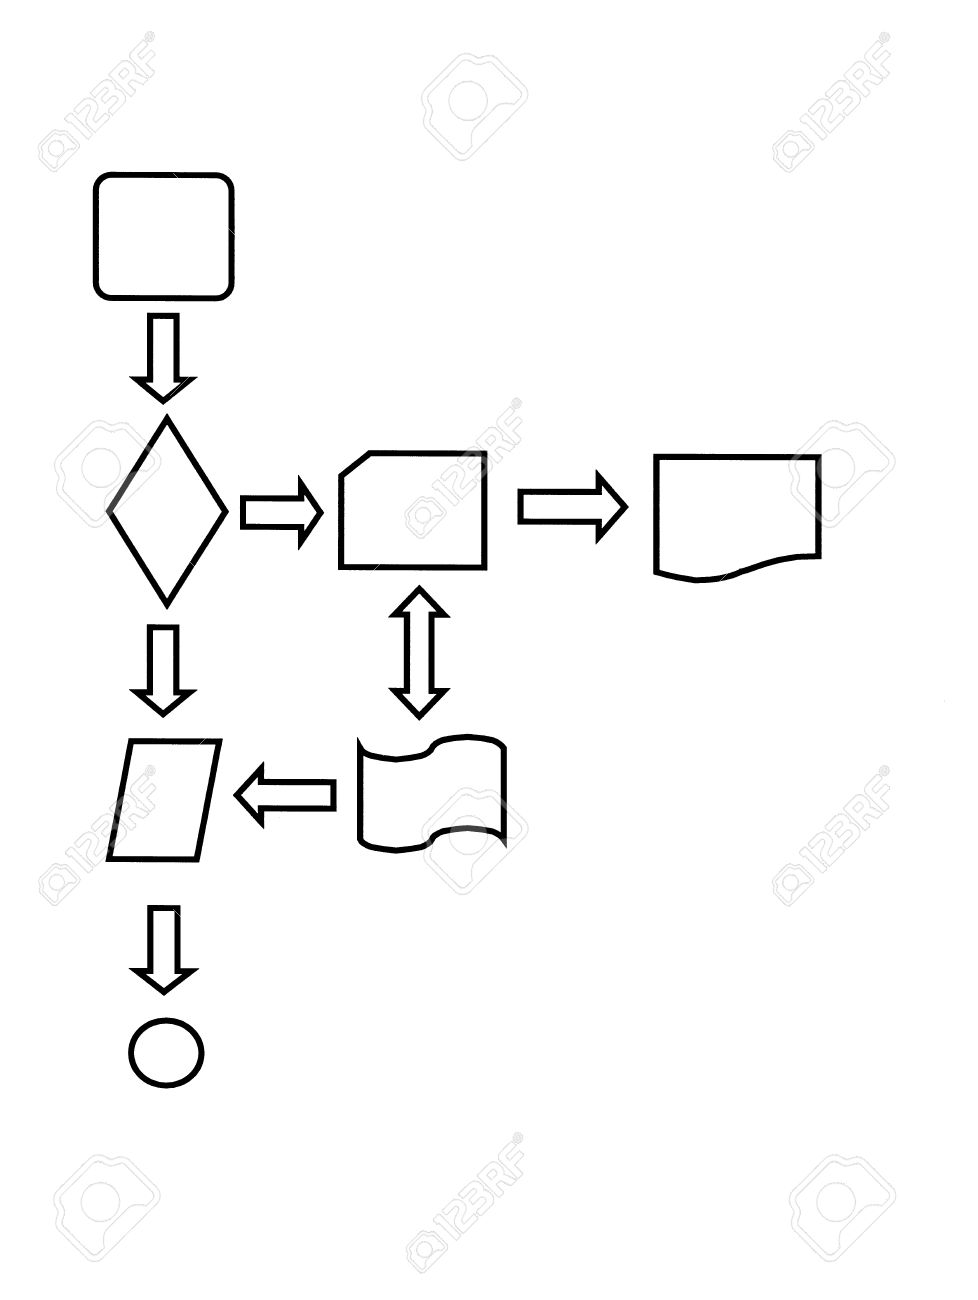 Is This Toy For Girls Or Boys Sacraparental blank flow chart – Flowchart Examples for Kids